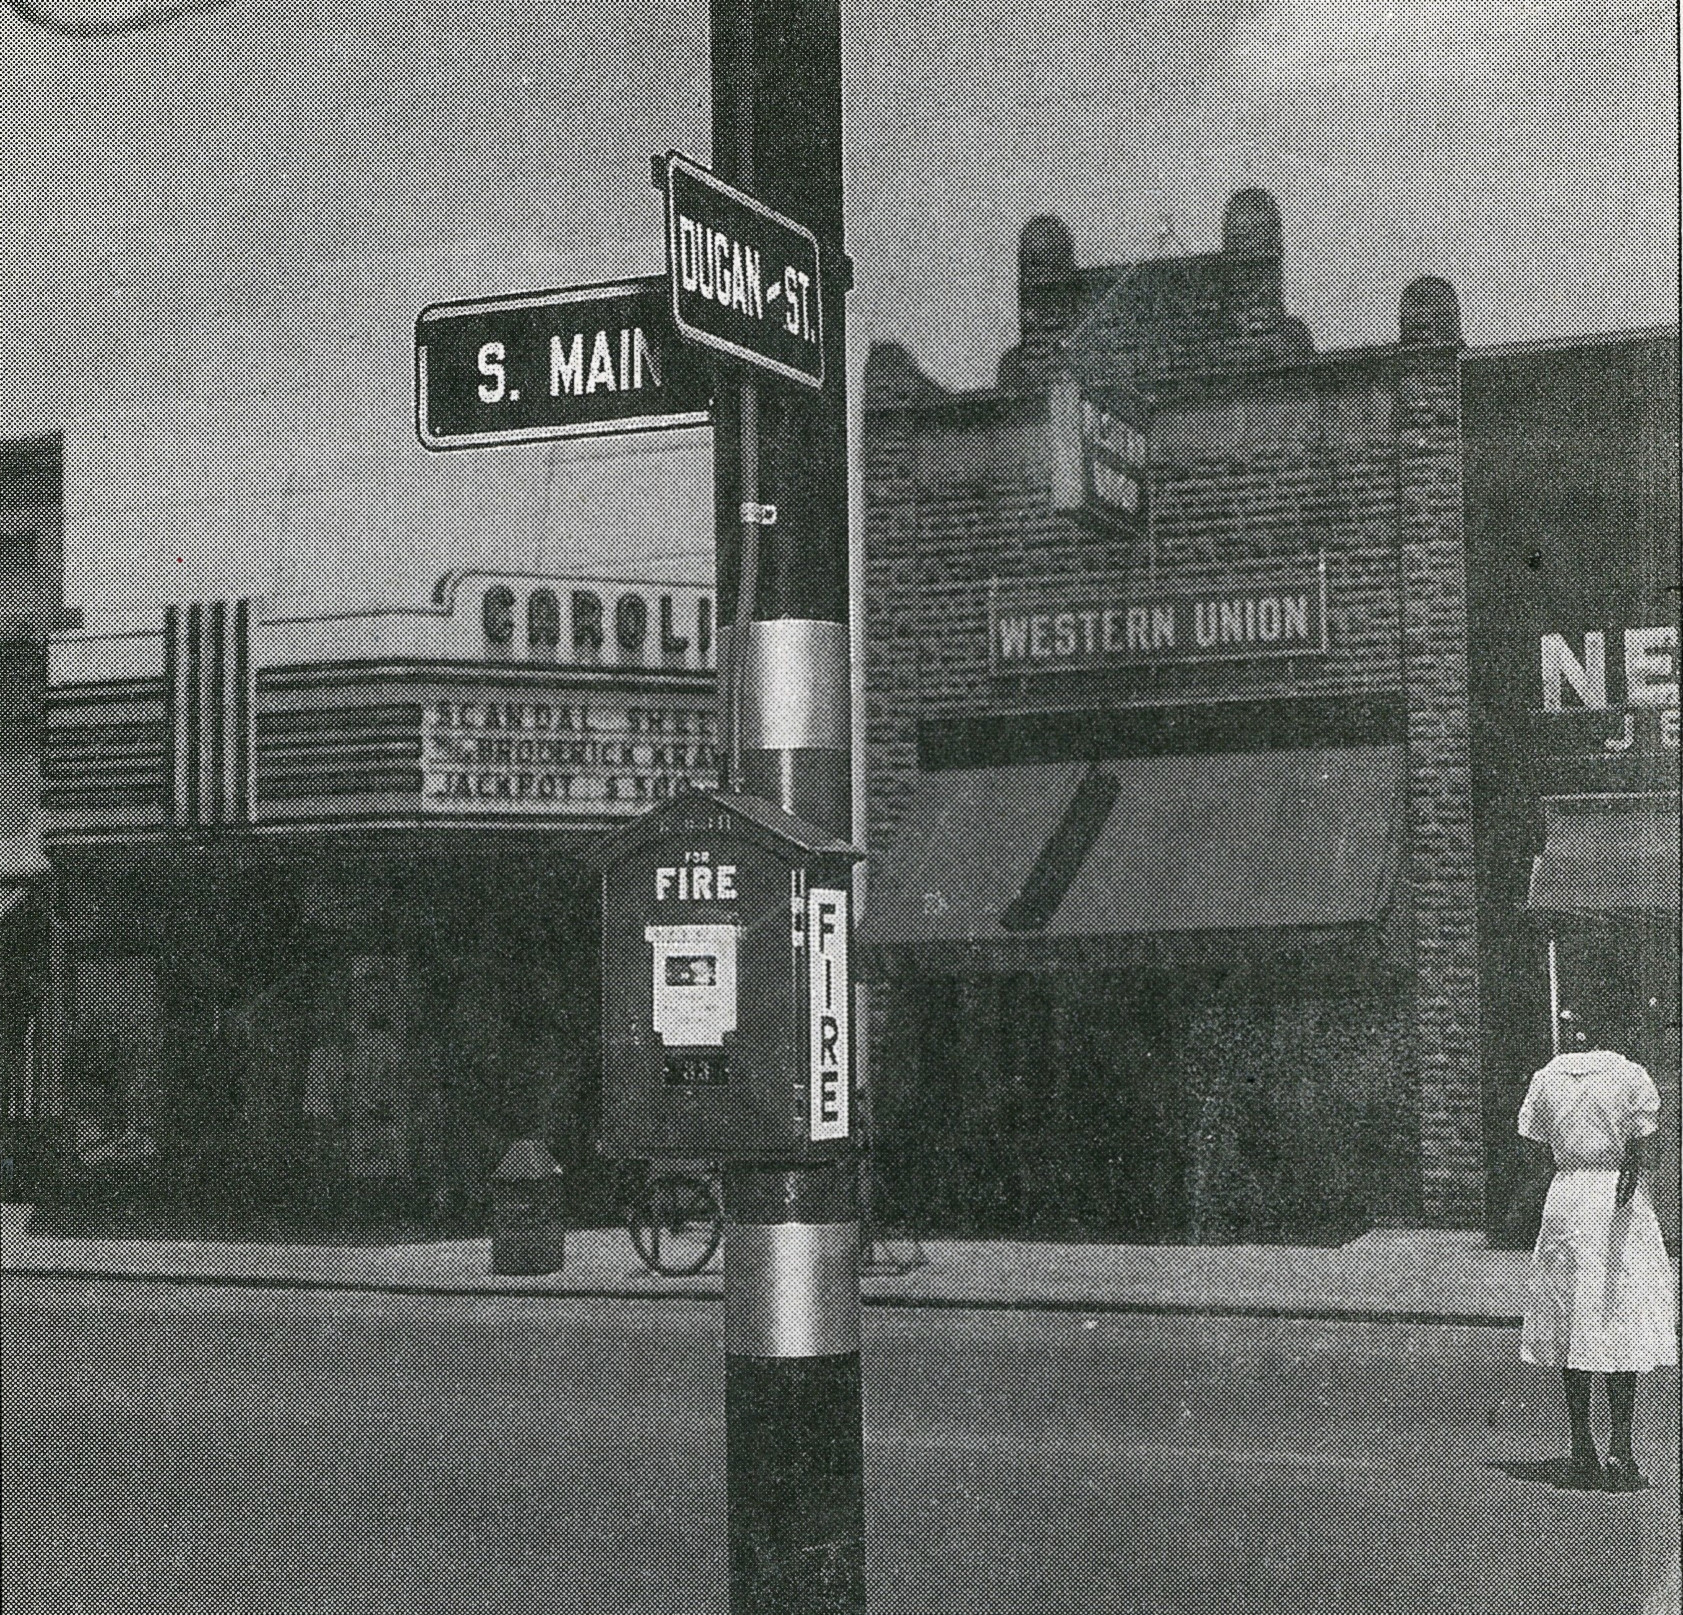 This photo, from a collection belonging to the late former City Manager J.A. Raffield, was thought to be taken in 1949 or 1950. It shows a new fire alarm box on the corner of Dugan and South Main streets. On the right is Neiman's Jewelers, and to the left is Western Union Telegraph Co. In the middle is the Carolina Theatre that was owned and operated by Isadore Denemark and J. Lawrence Goldsmith.